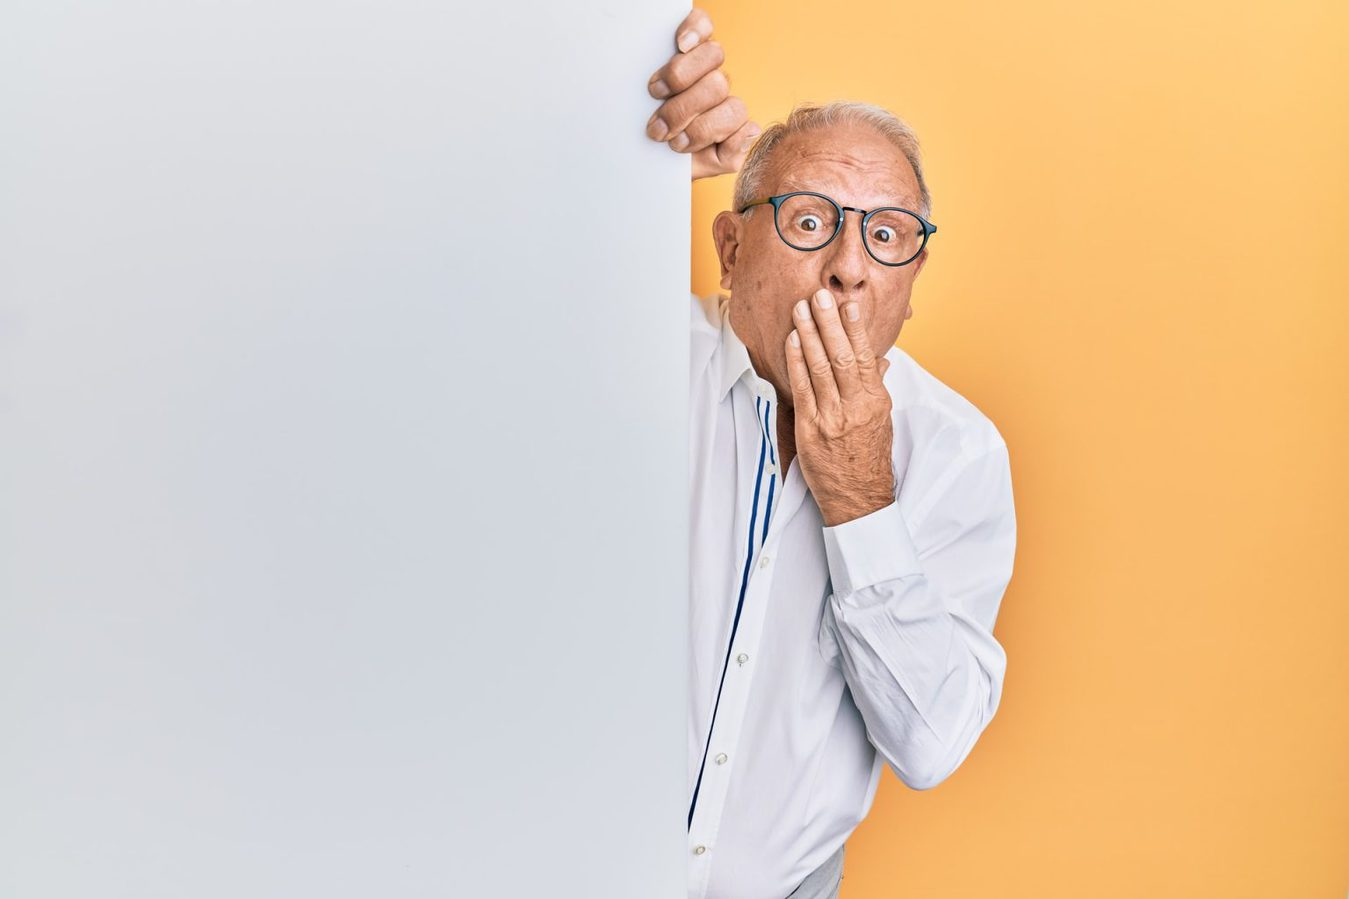 A man going oops against a yellow background